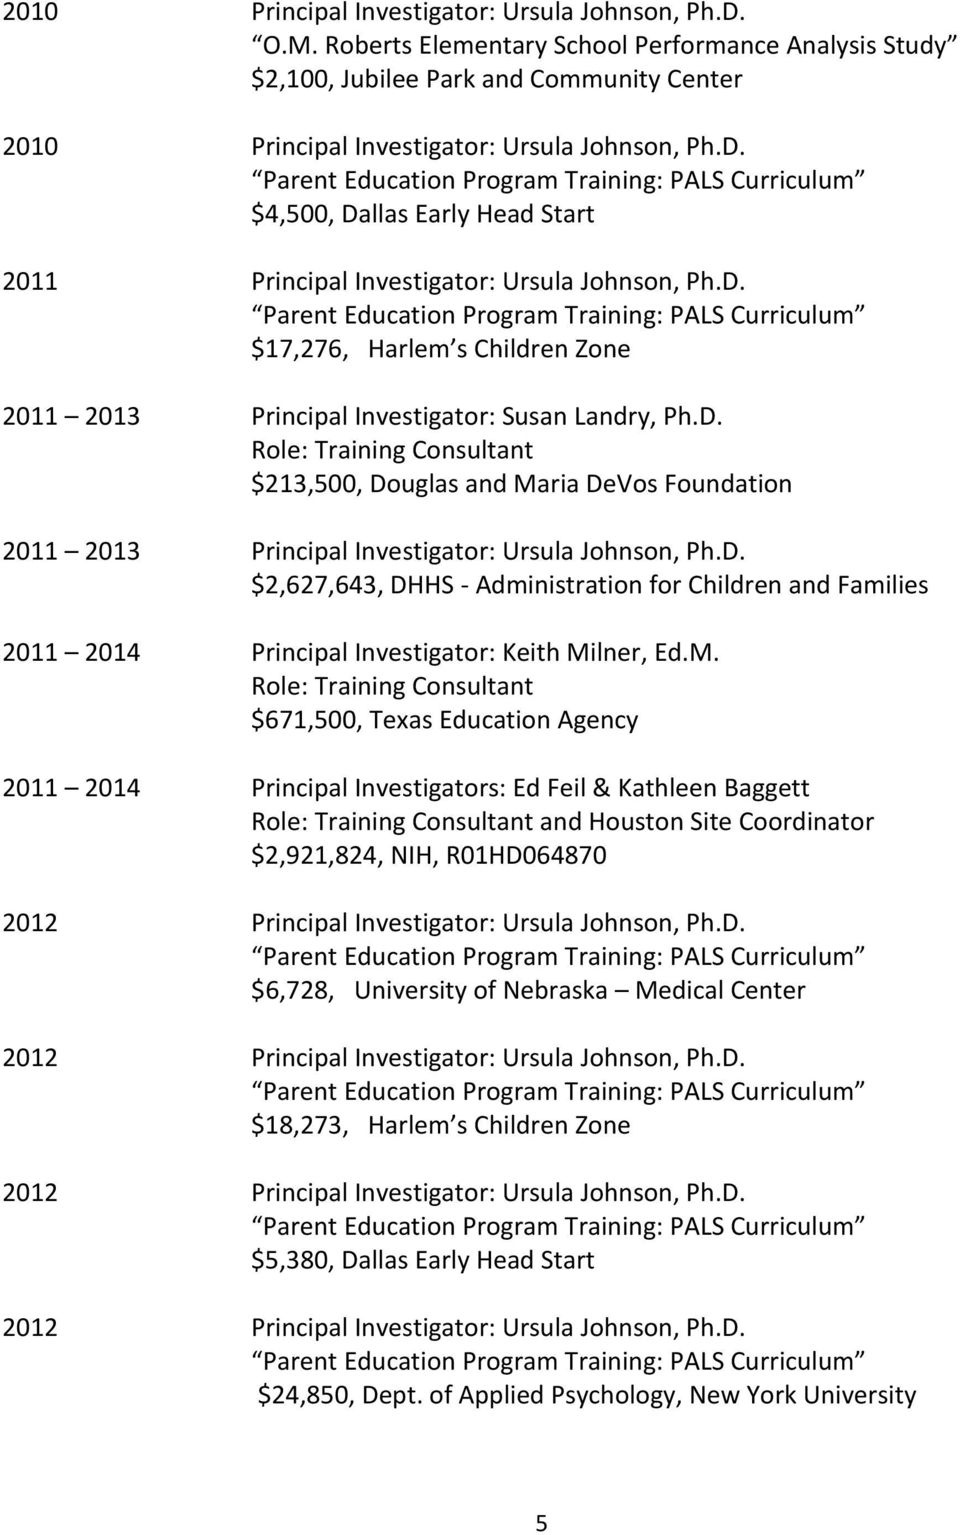 D. $2,627,643, DHHS - Administration for Children and Families 2011 2014 Principal Investigator: Keith Mi